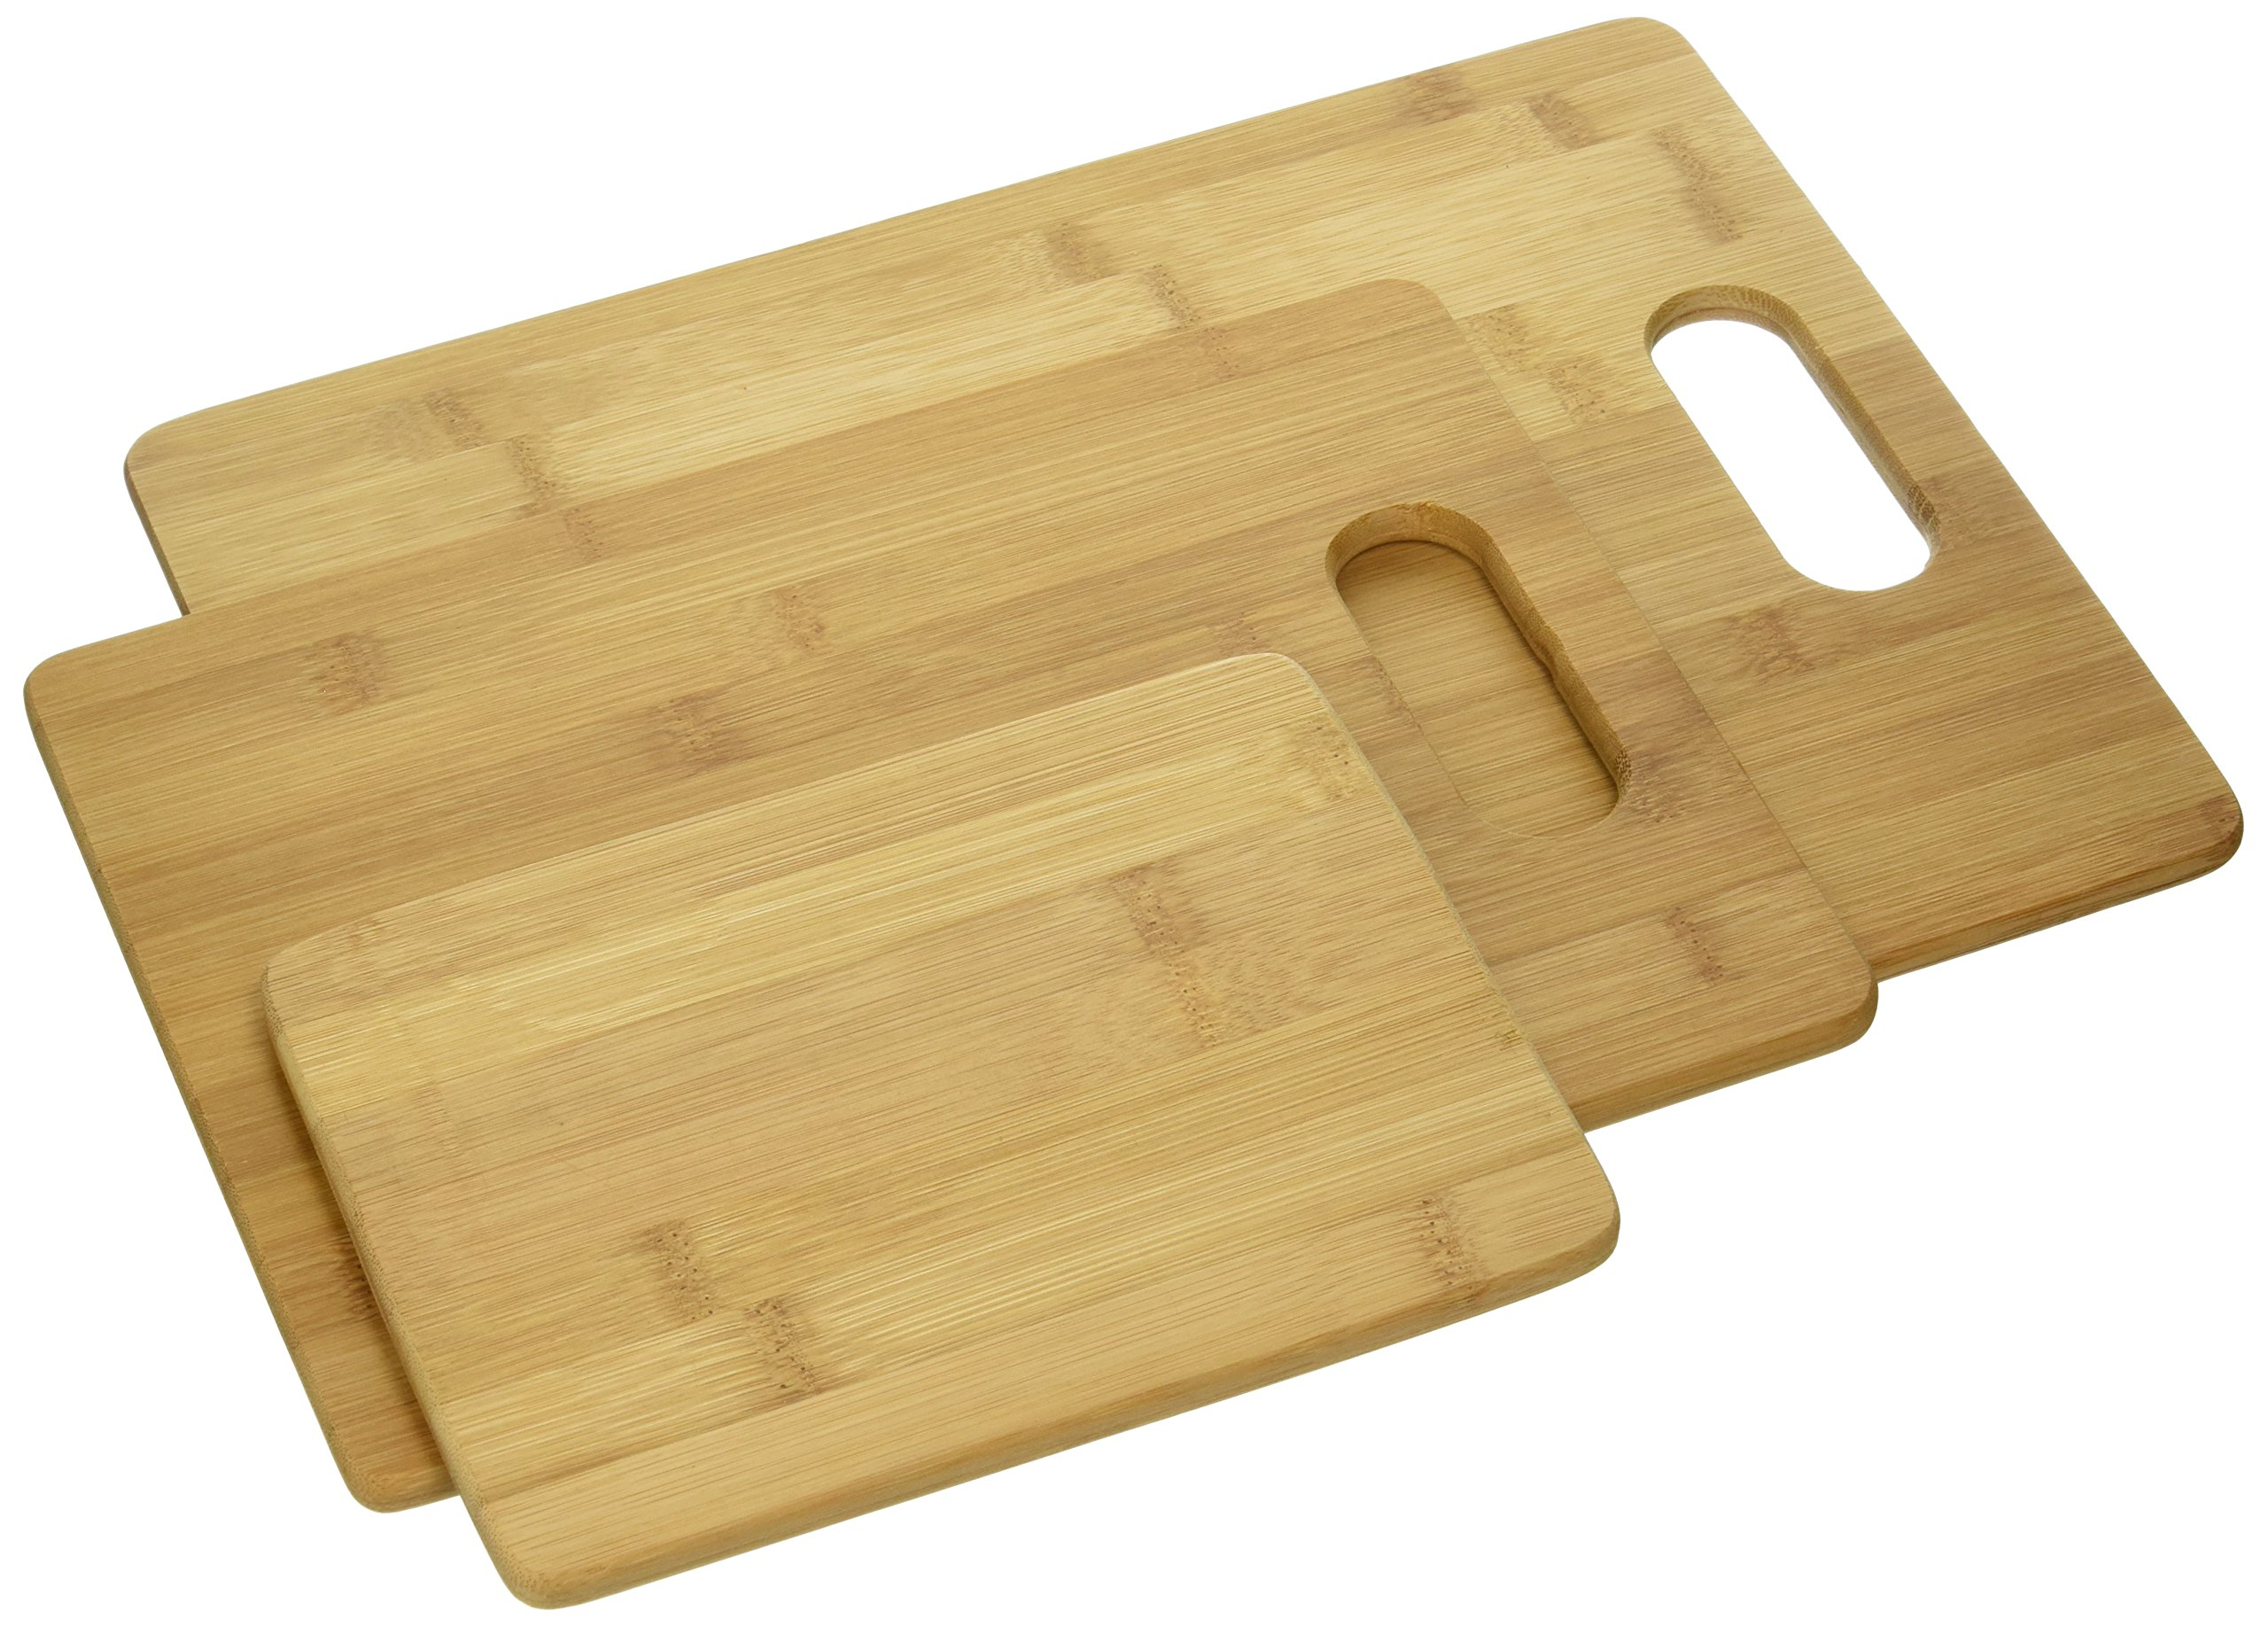 Everyday Essentials 3 Piece Cutting Cocktail Bar Board Set For Meat & Veggie Prep, Serve Bread, Crackers & Cheese, Bamboo by Everyday Essentials